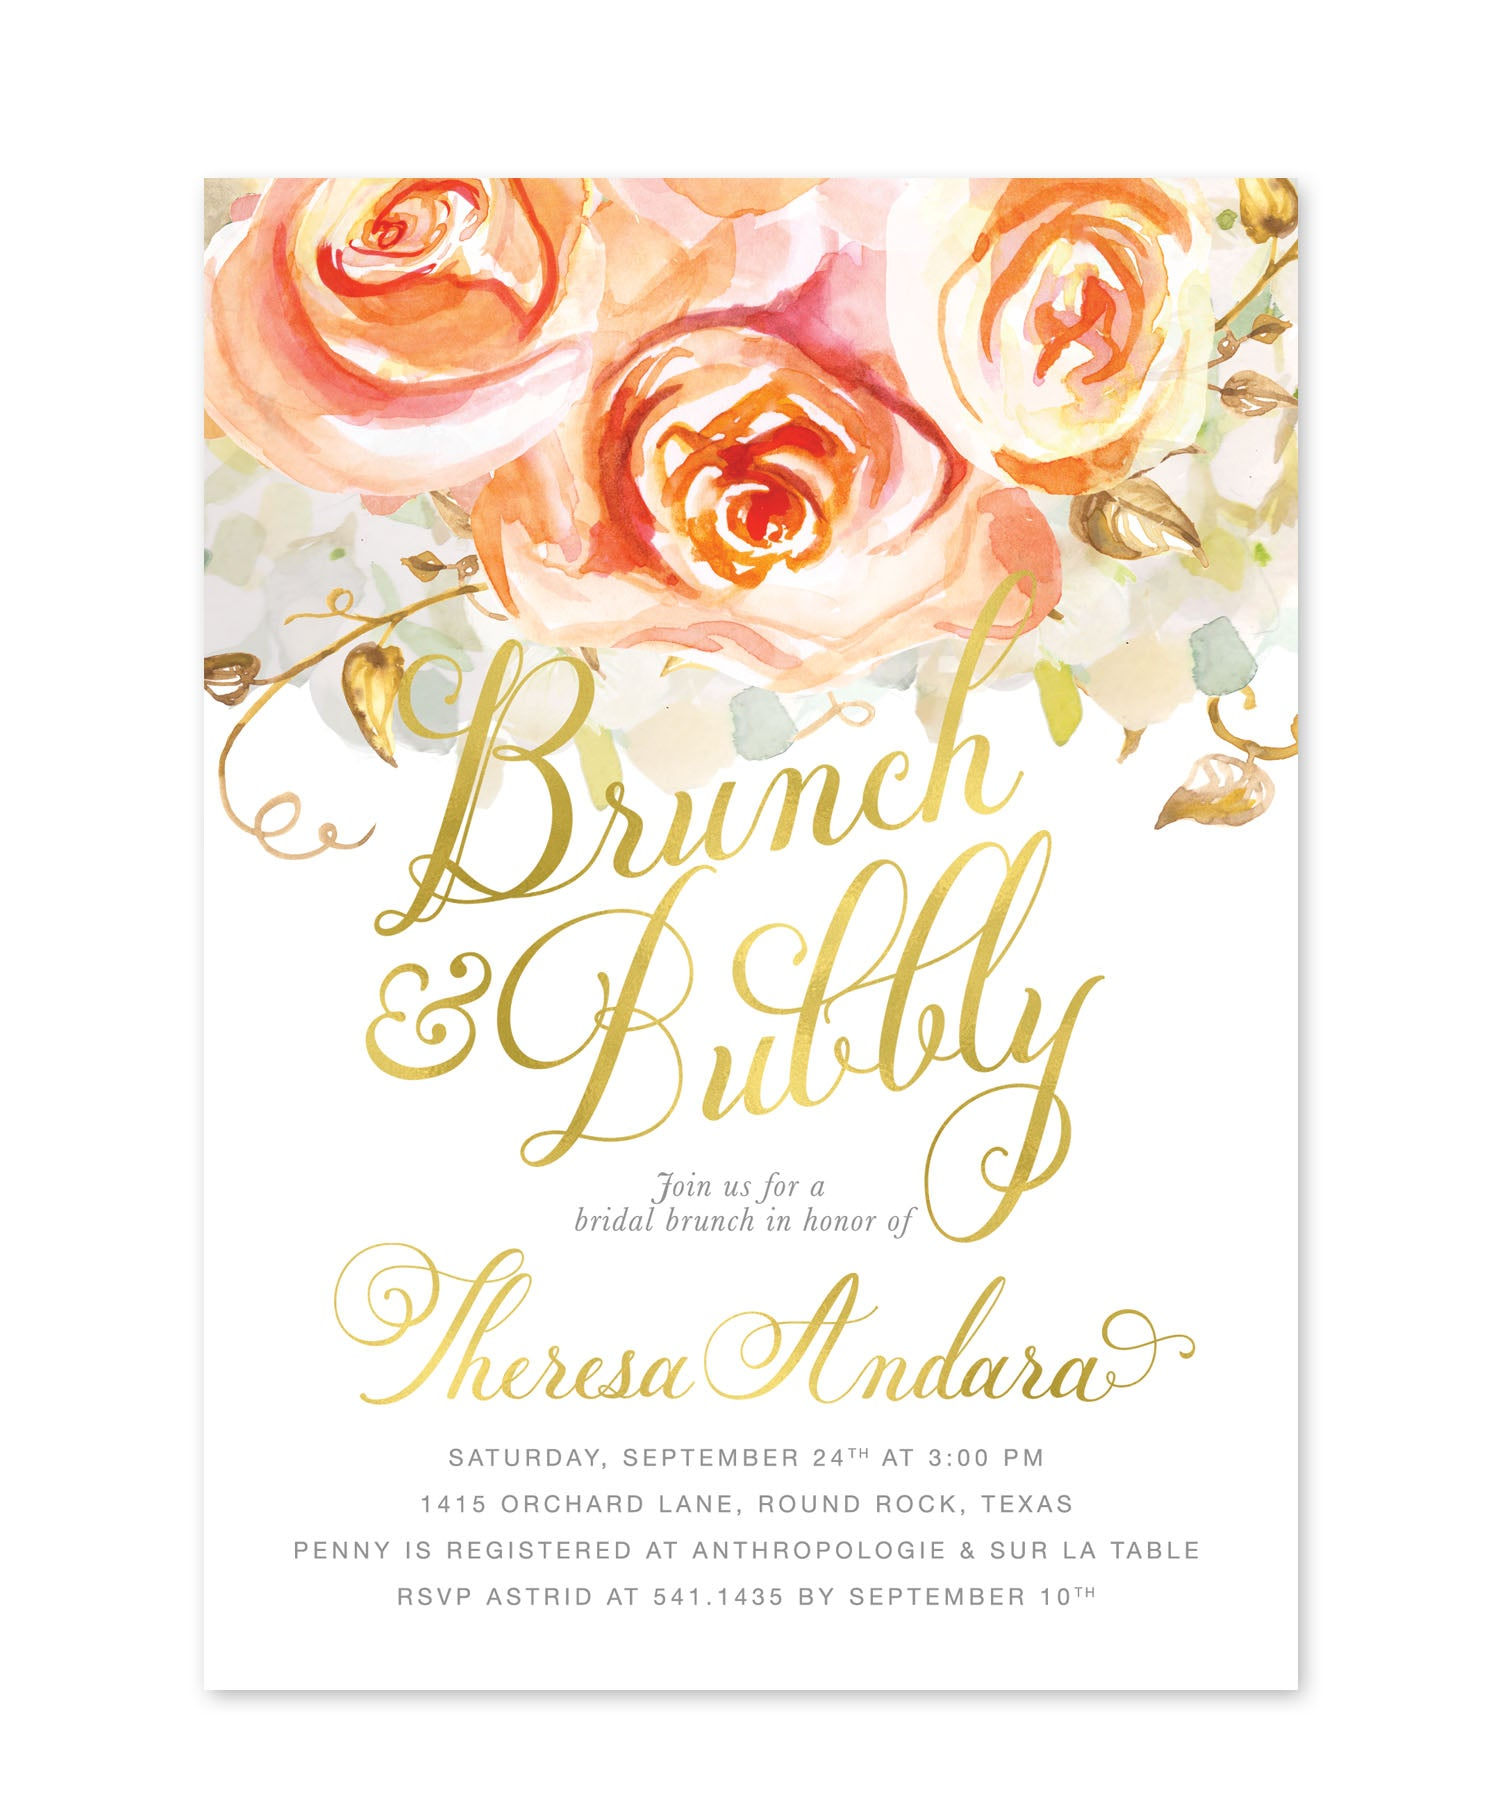 fall bridal shower invitation brunch bubbly autumn harvest bridal shower invite orange peach roses white gold printed printable fall 4